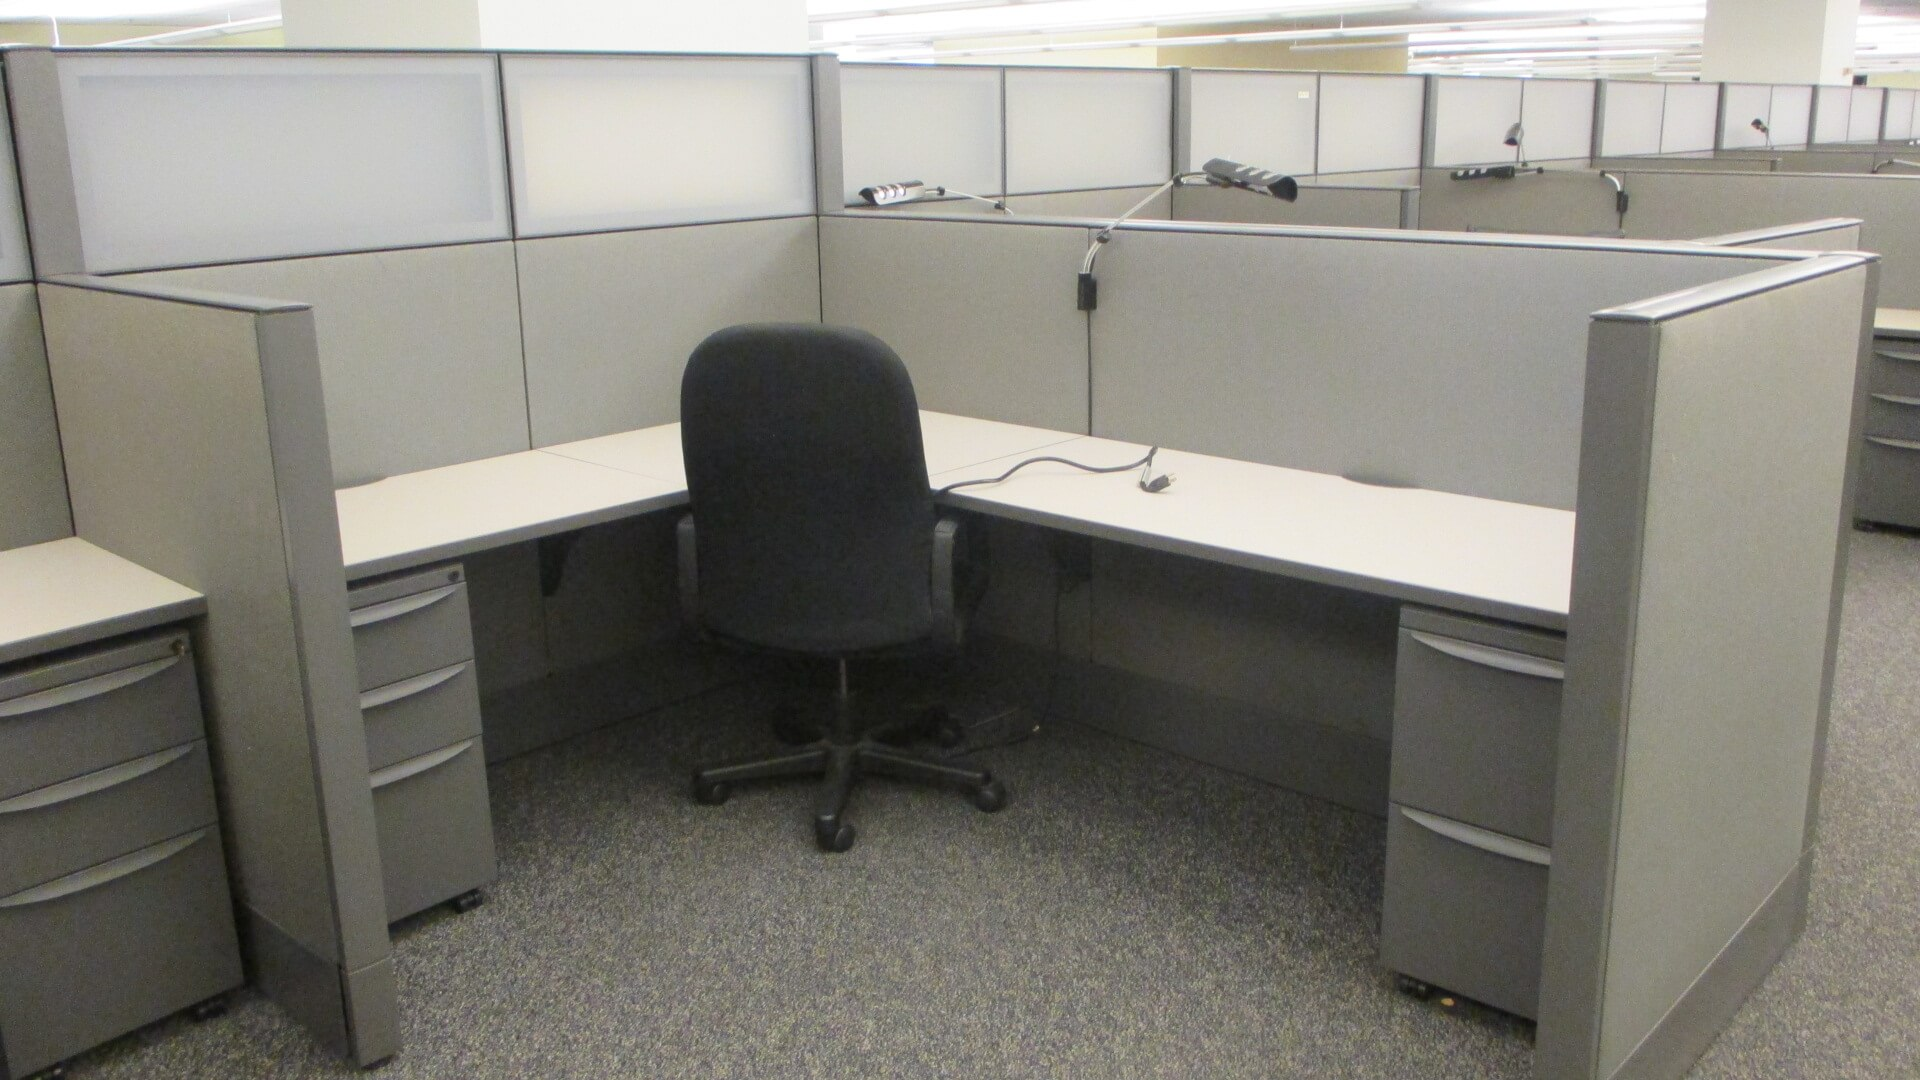 Used cubicles with Low/High Panel Combos from Haworth - This Haworth office furniture is configured with Hi-Low panels